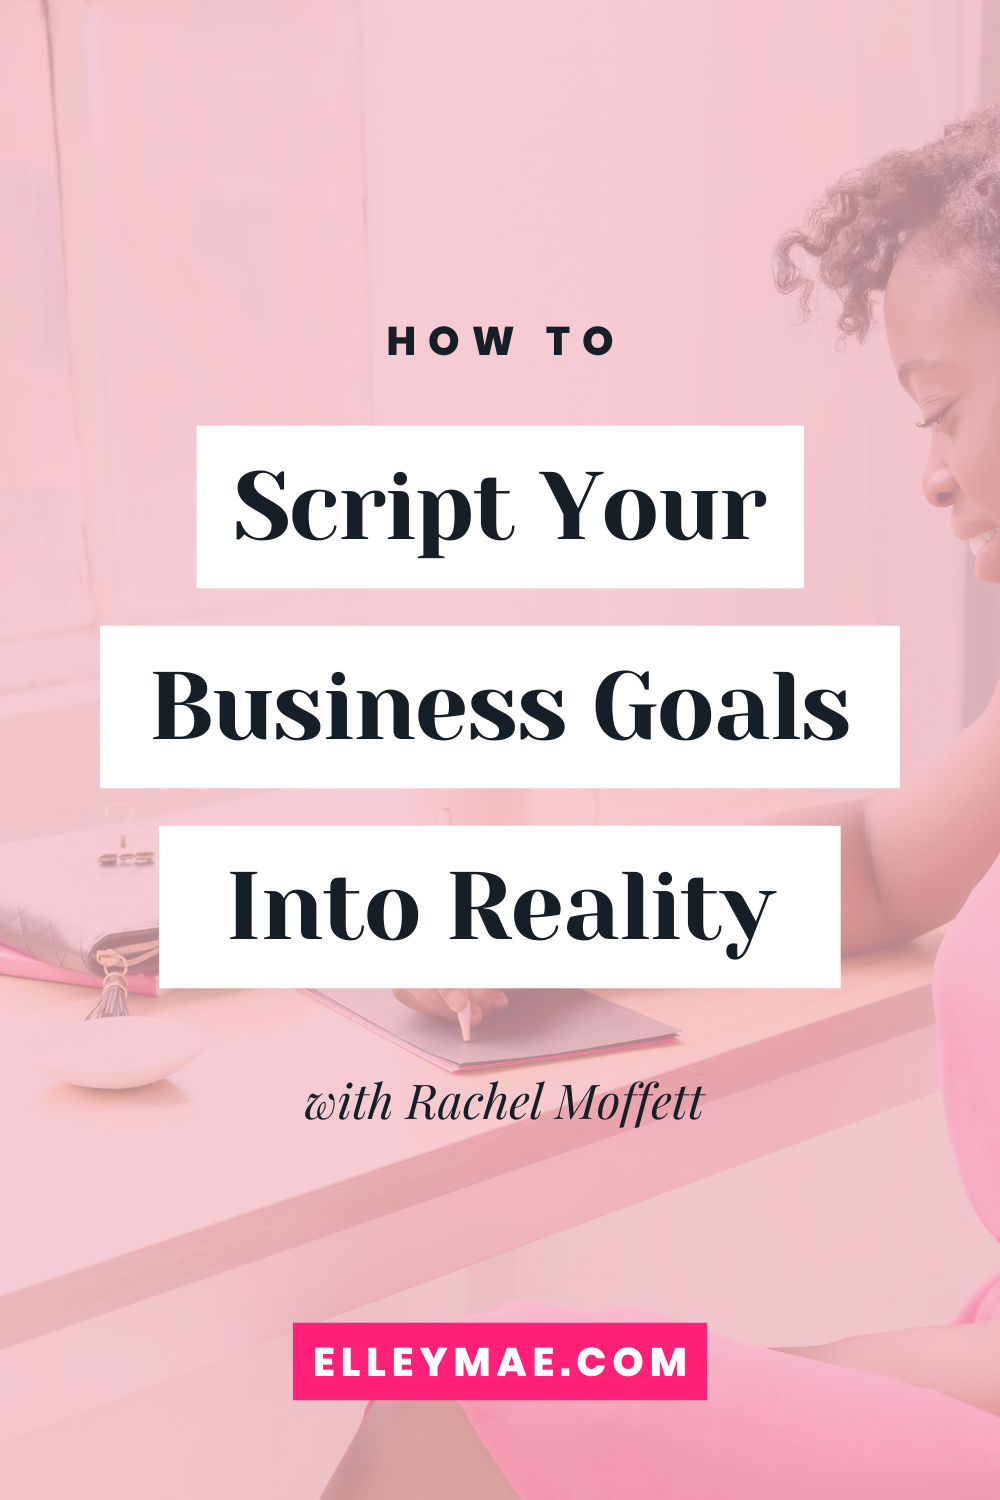 049. How to Script Your Business Goals Into Reality with Rachel Moffett